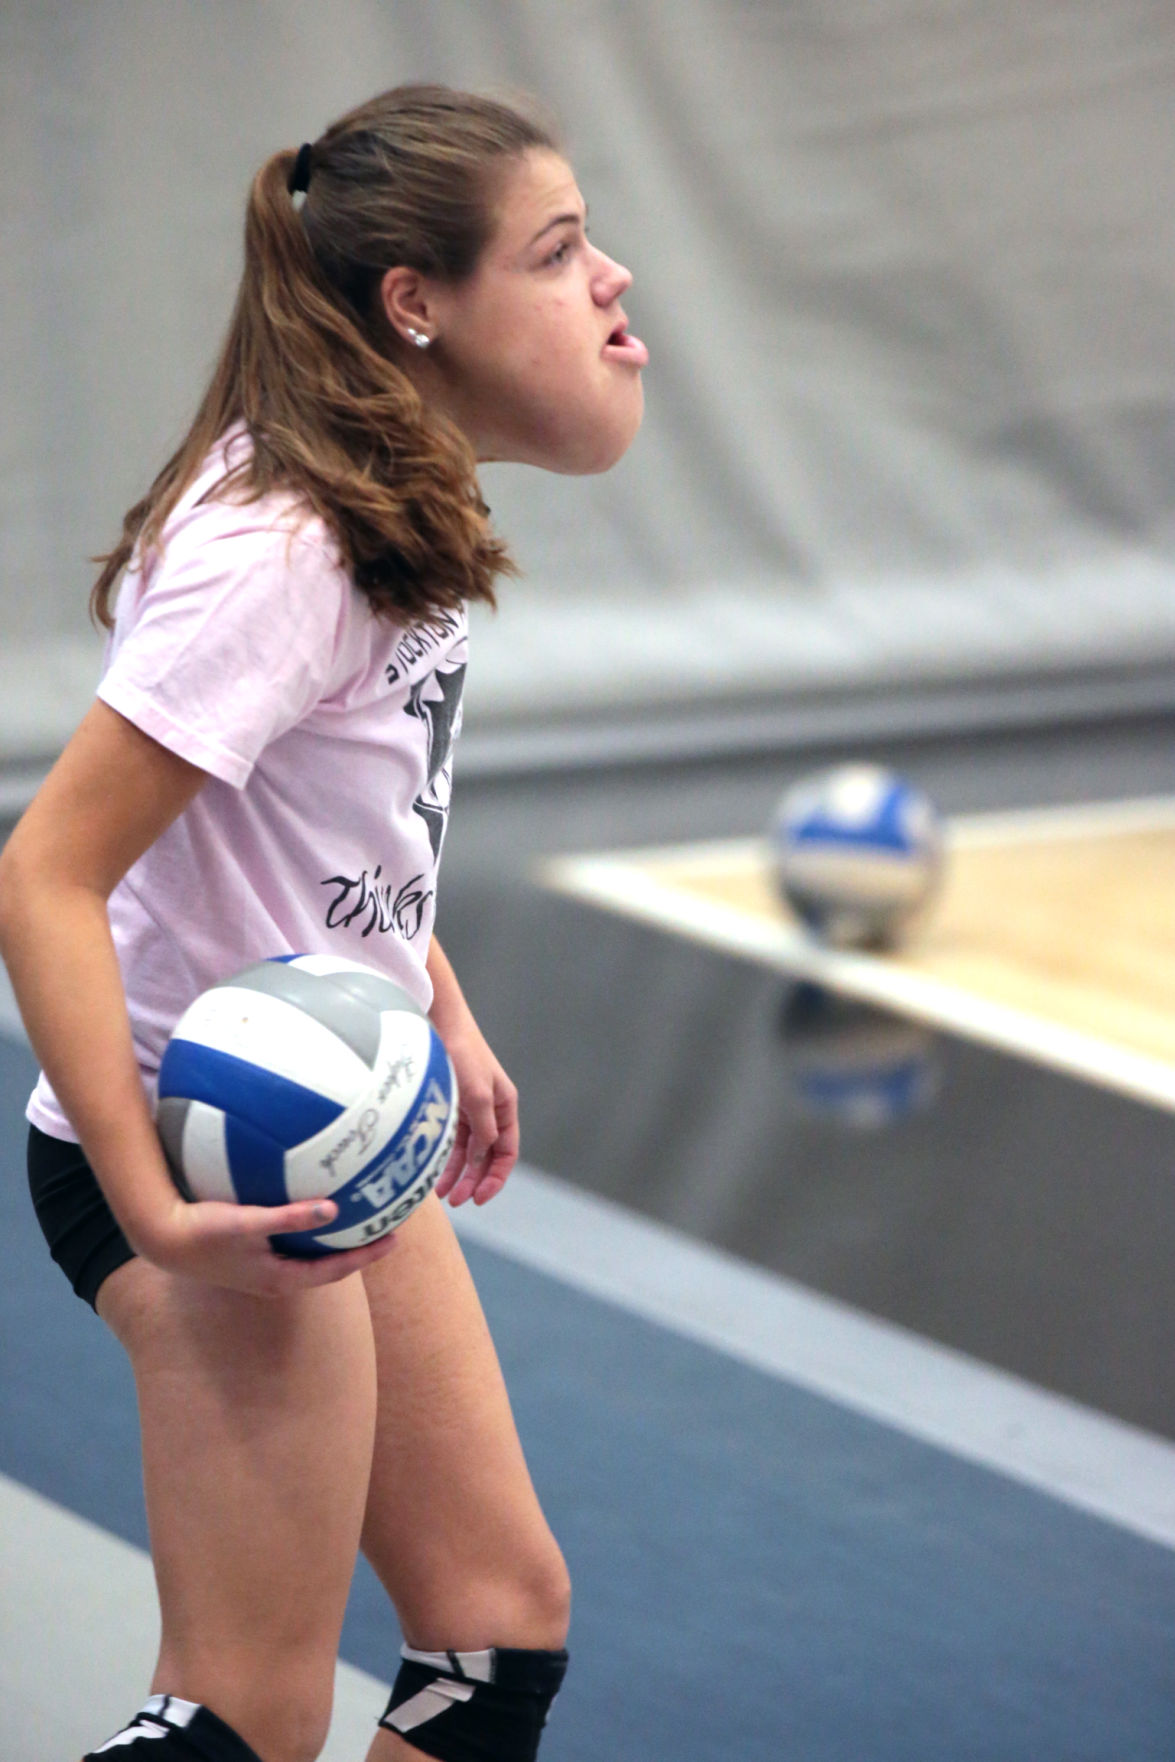 stockton volleyball player with rare condition a light for the team